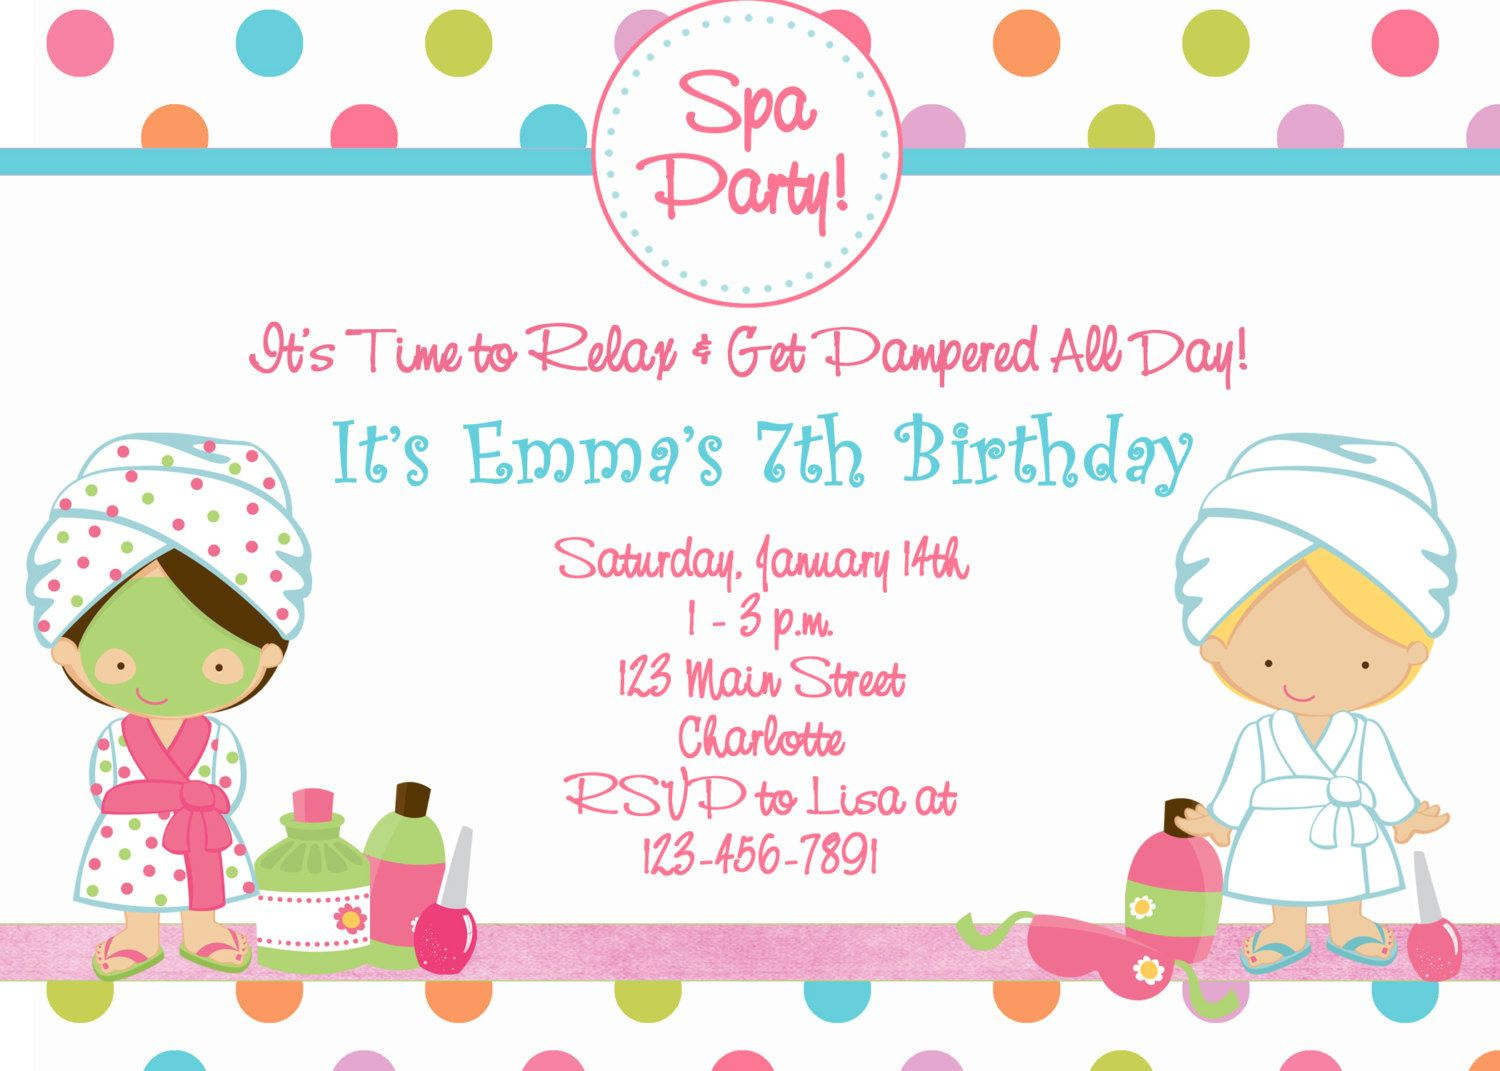 Free Printable Spa Birthday Party Invitations | Spa At Home - Free Printable Event Invitations